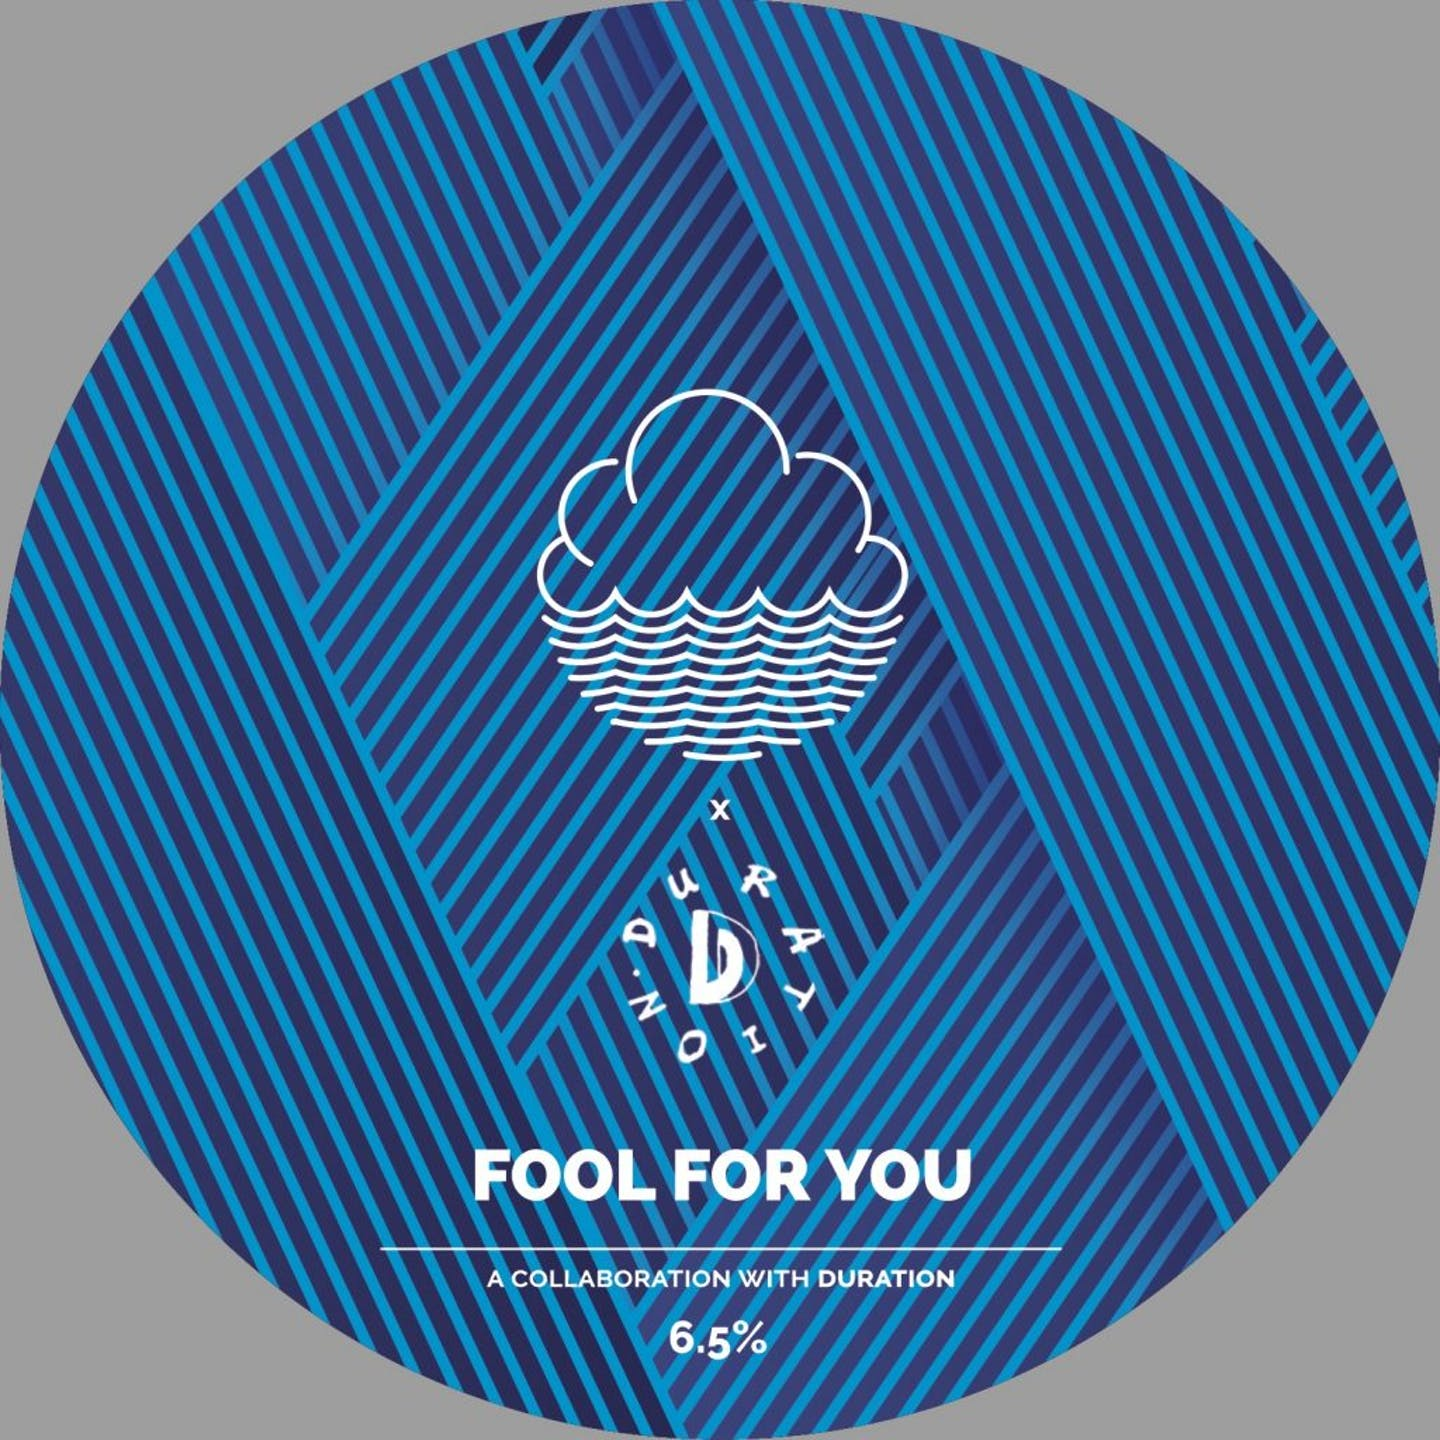 1 Cloudwater x Duration Fool For You